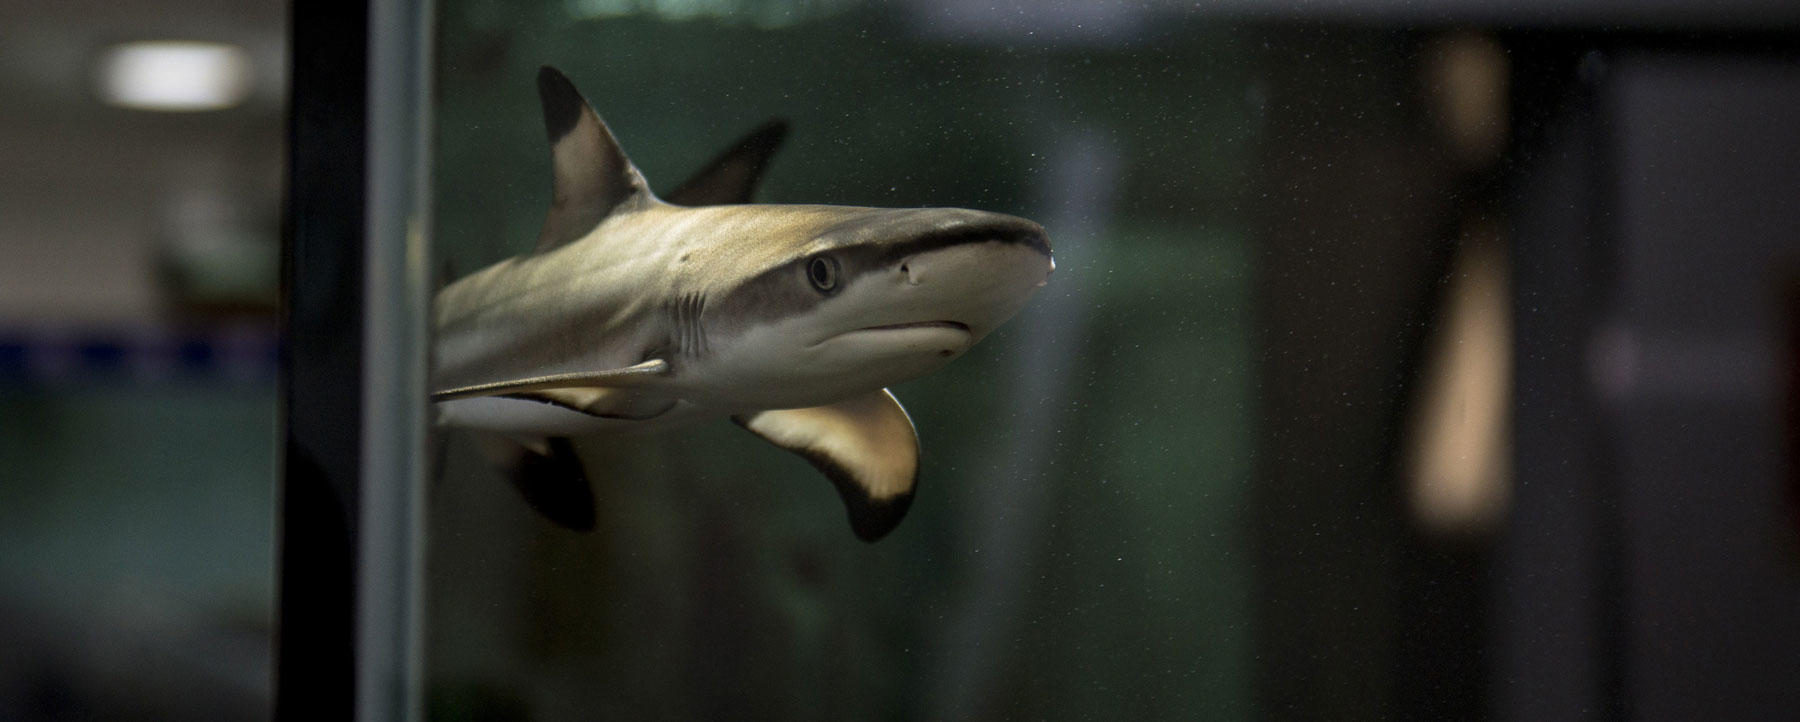 A juvenile blacktip reef shark swims in a water tank at a seafood market in Hong Kong